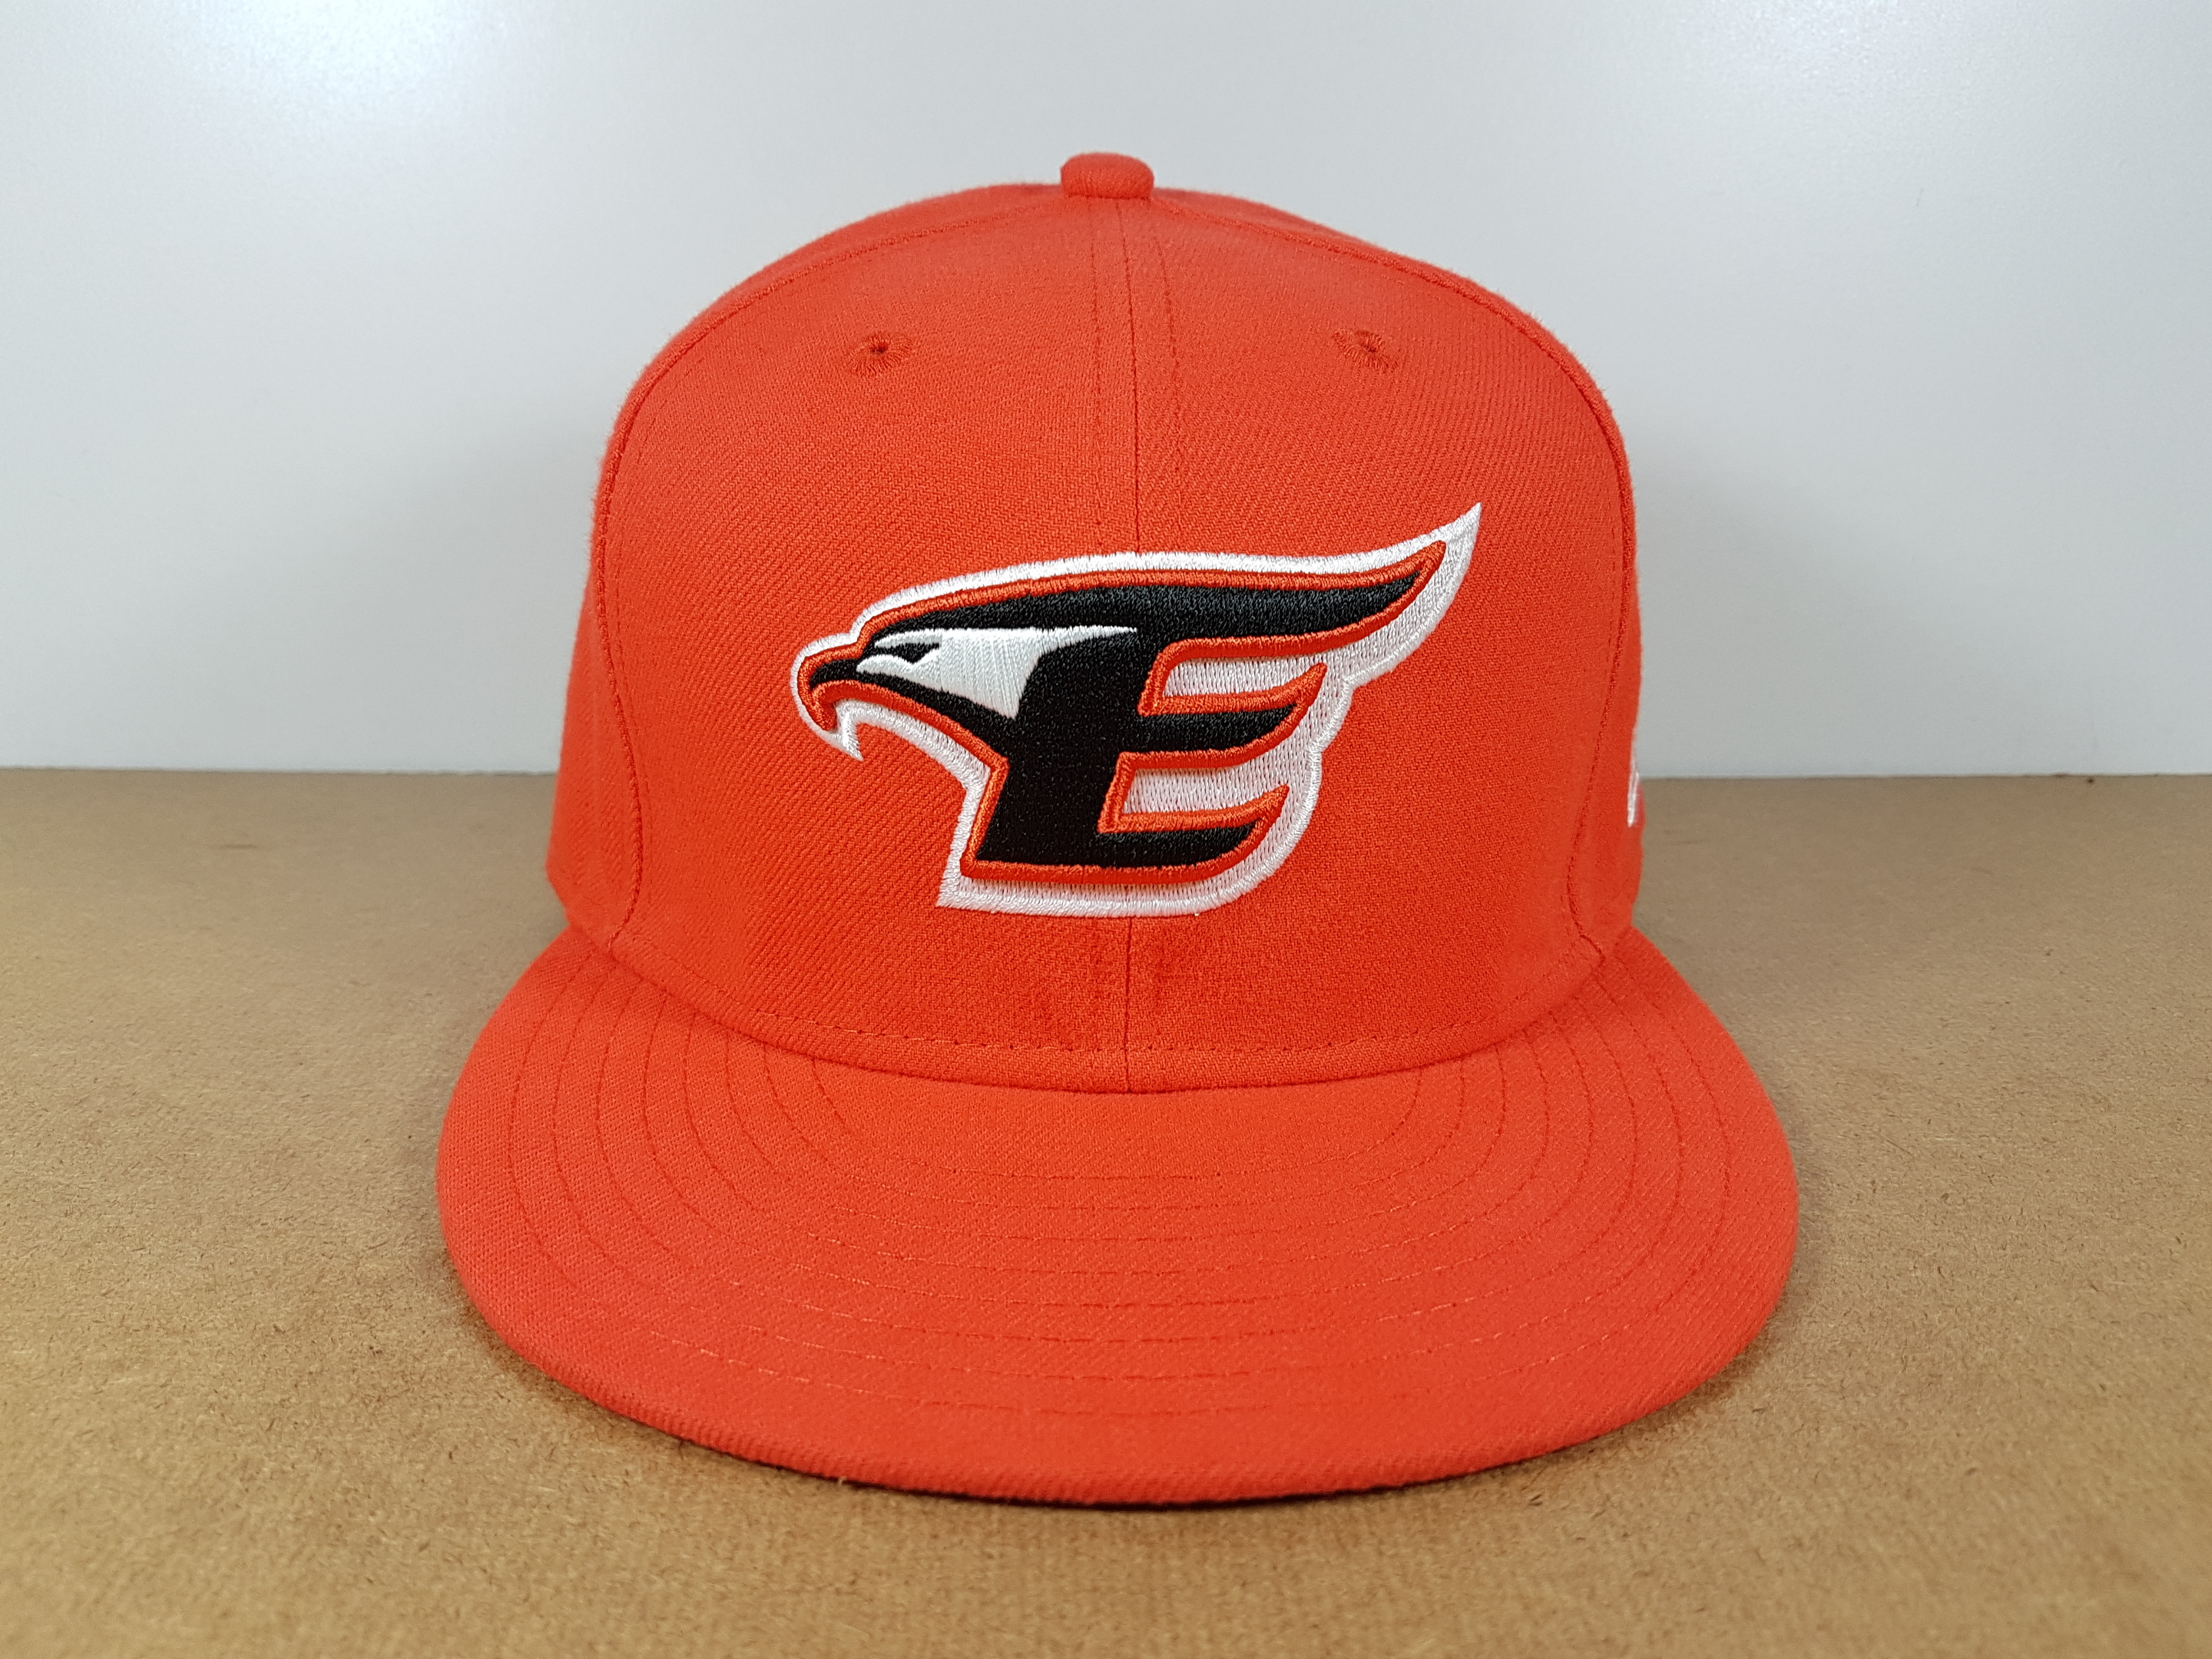 New Era KBO ทีม The Hanhwa Eagles ไซส์ 7 3/8 ( 58.7cm )